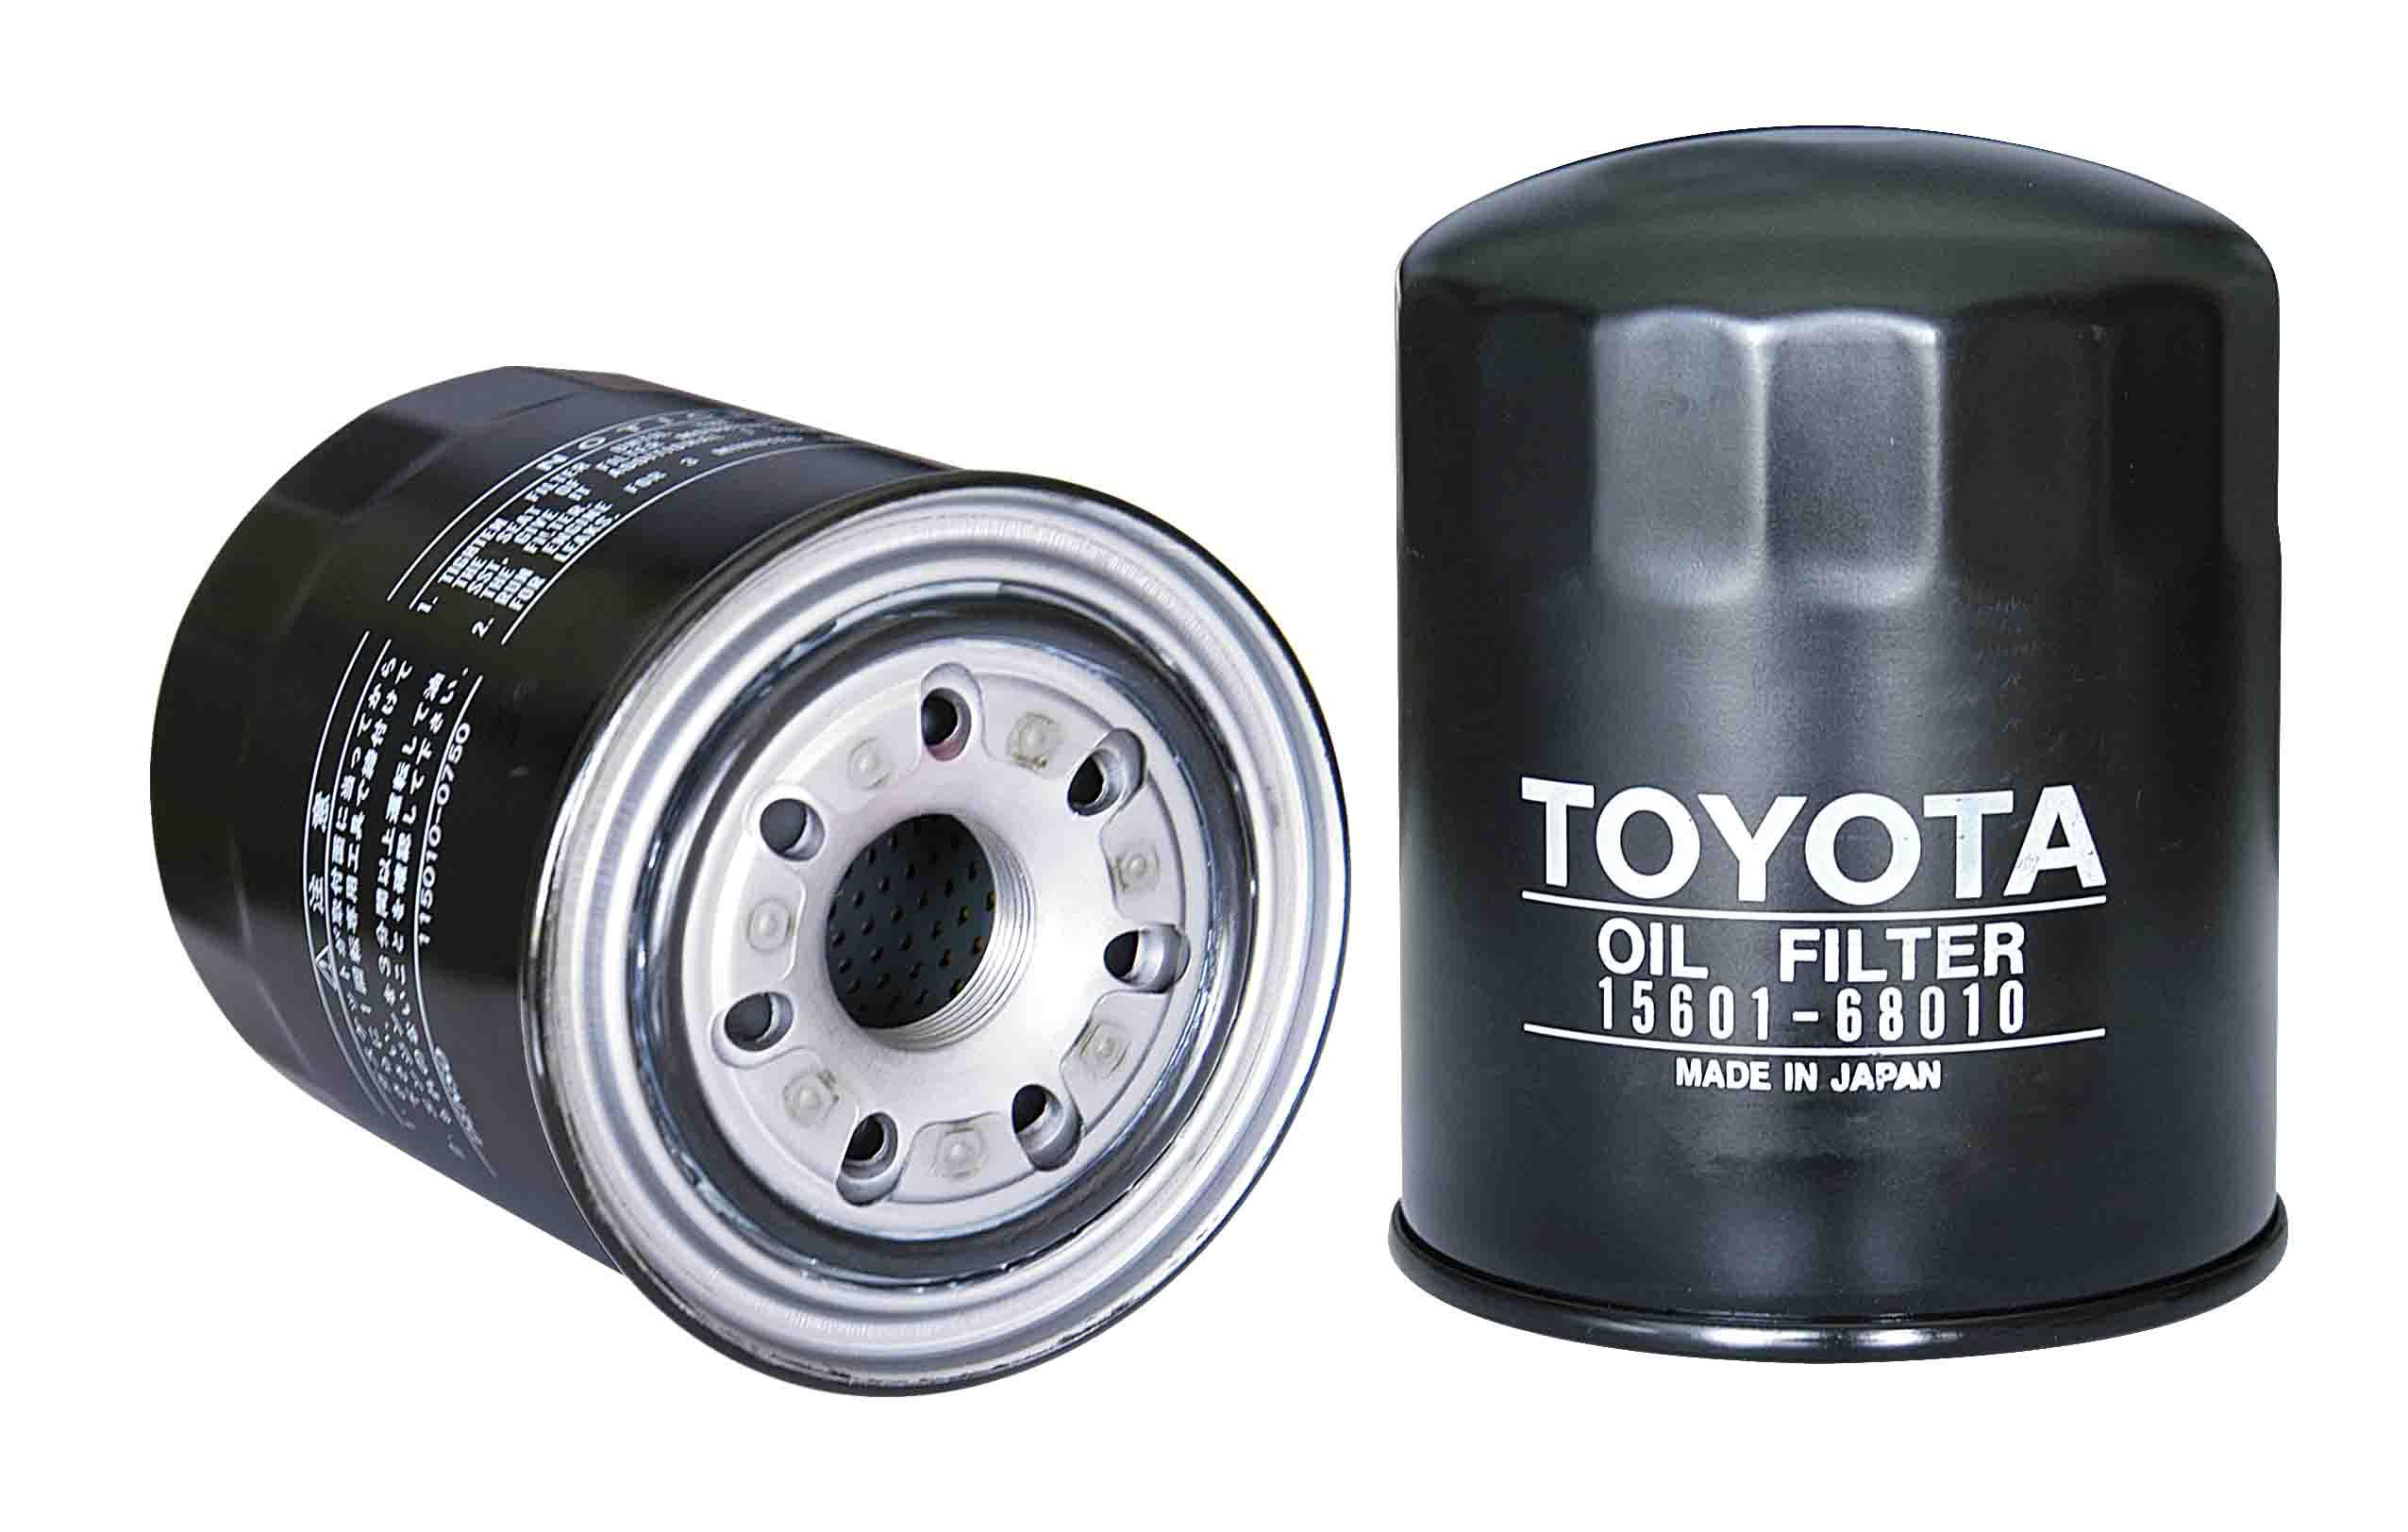 Duplex Fuel Filter Mann Hummel Oil Filters September 2015 Toyota Images